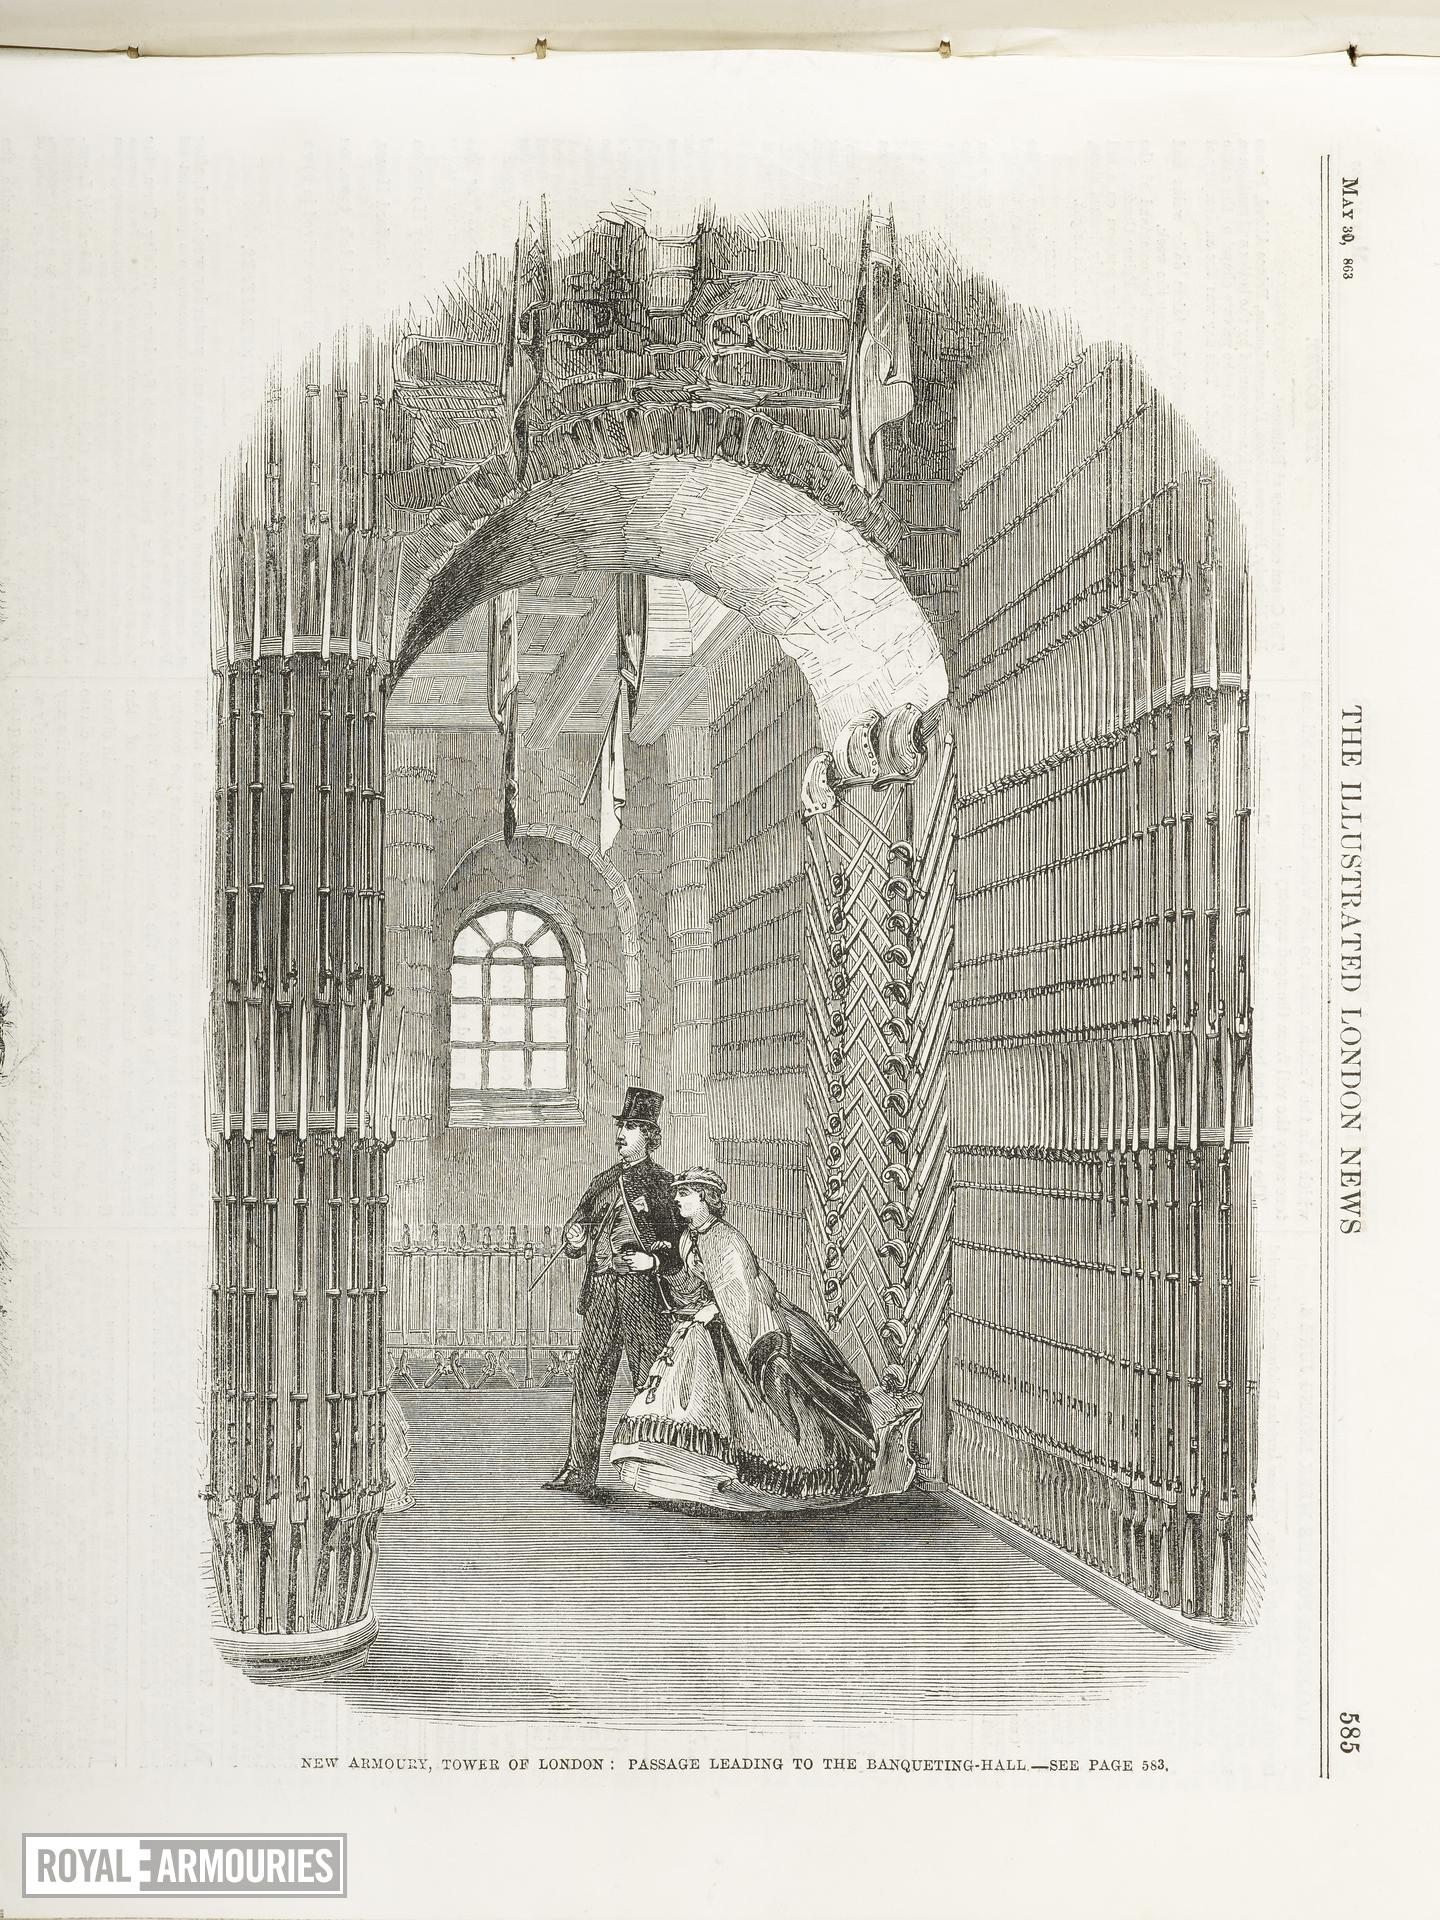 Print , entitled:  'New Armoury, Tower of London:  passage leading to the Banqueting Hall - see page 583'.